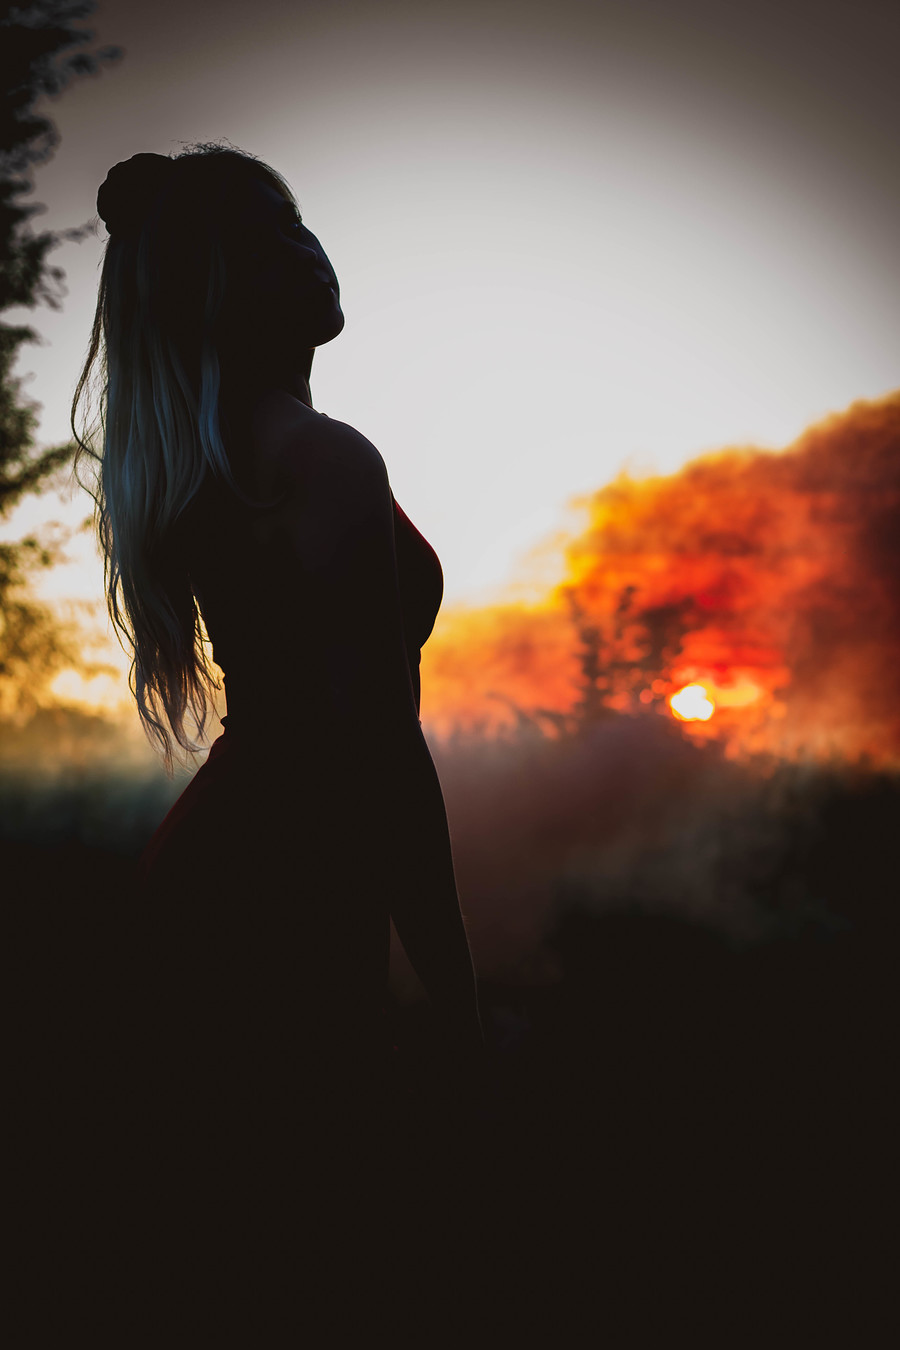 Sunset Silhouette / Photography by Madonna Marie / Uploaded 21st September 2019 @ 03:11 PM